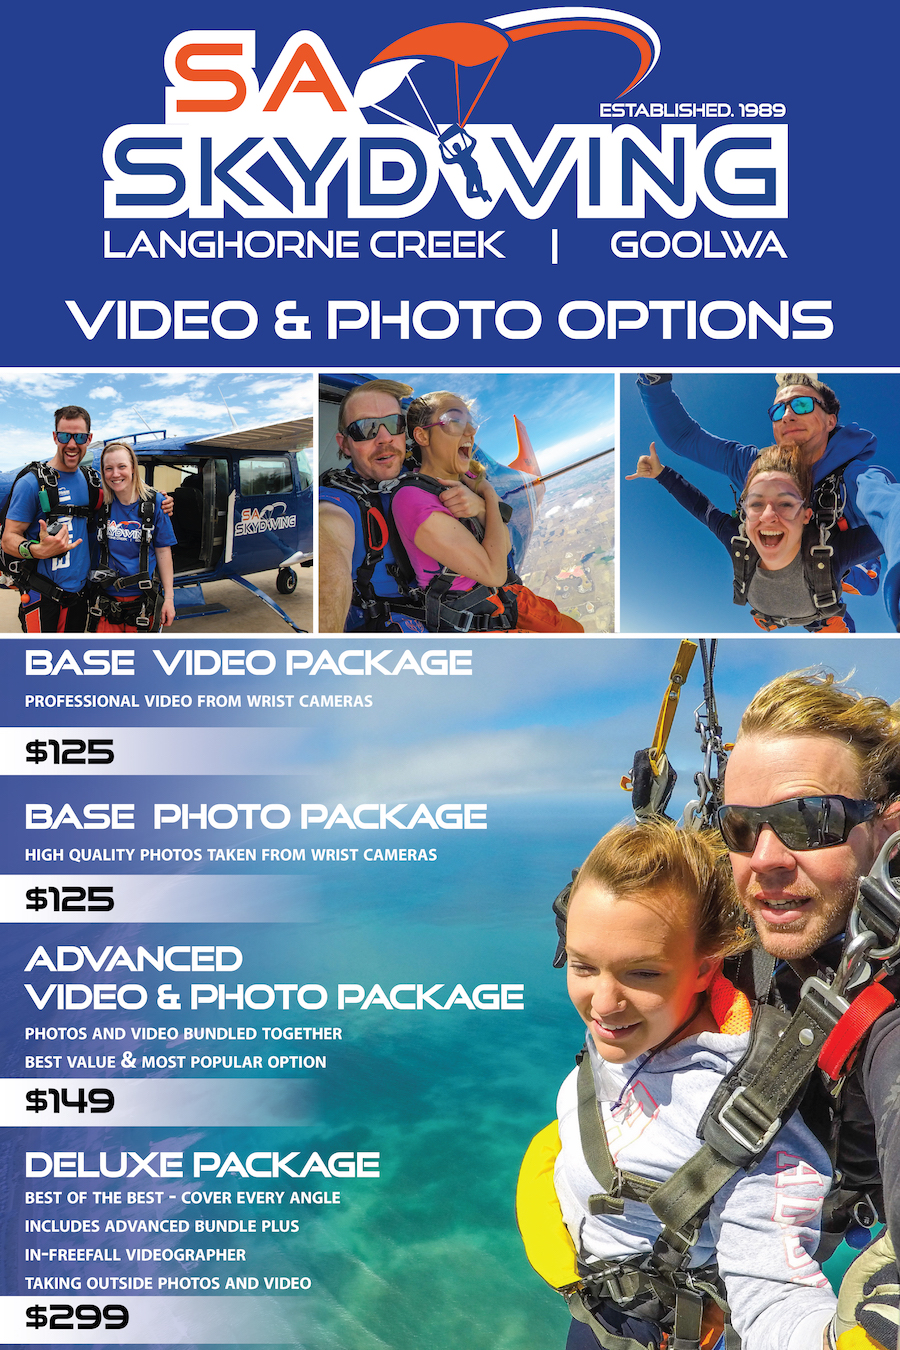 Tandem Skydiving Video Packages